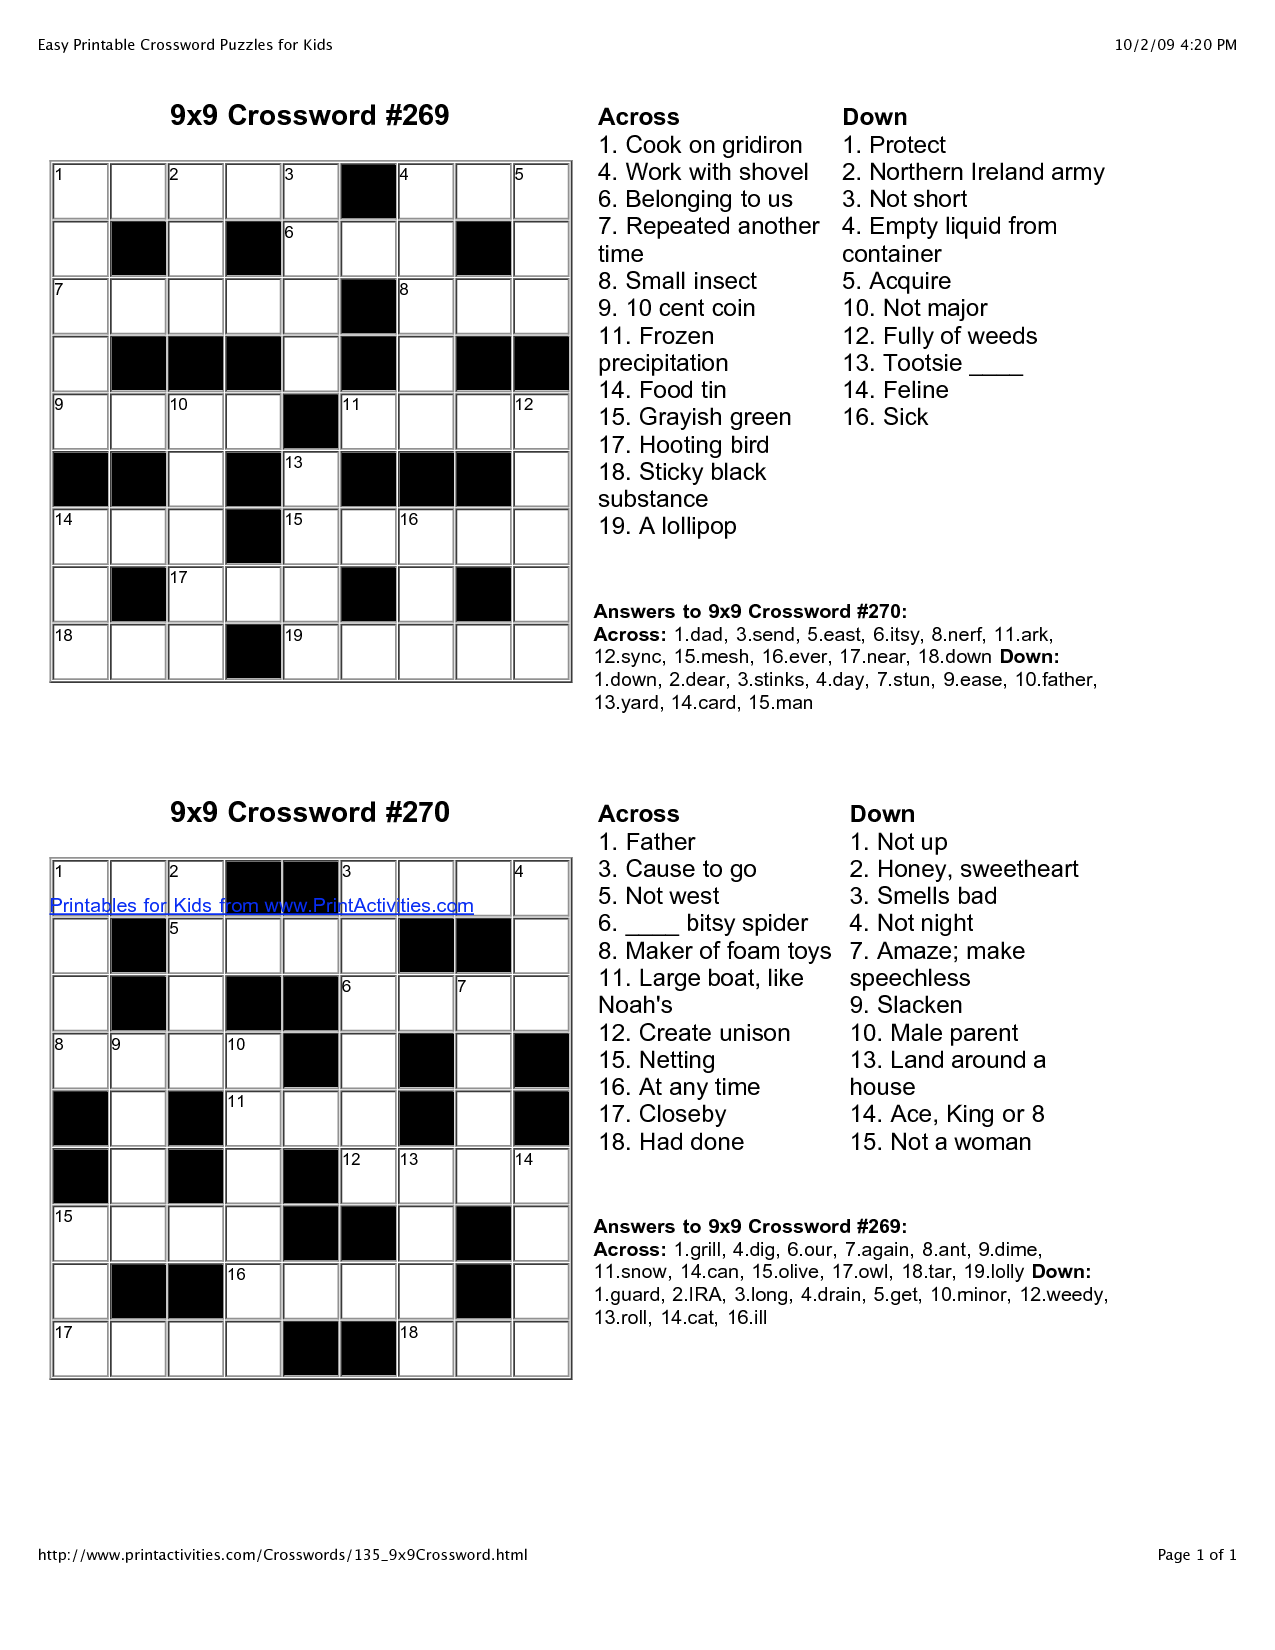 Easy Crossword Puzzles | I'M GOING TO BE AN SLP! | Pinterest ...